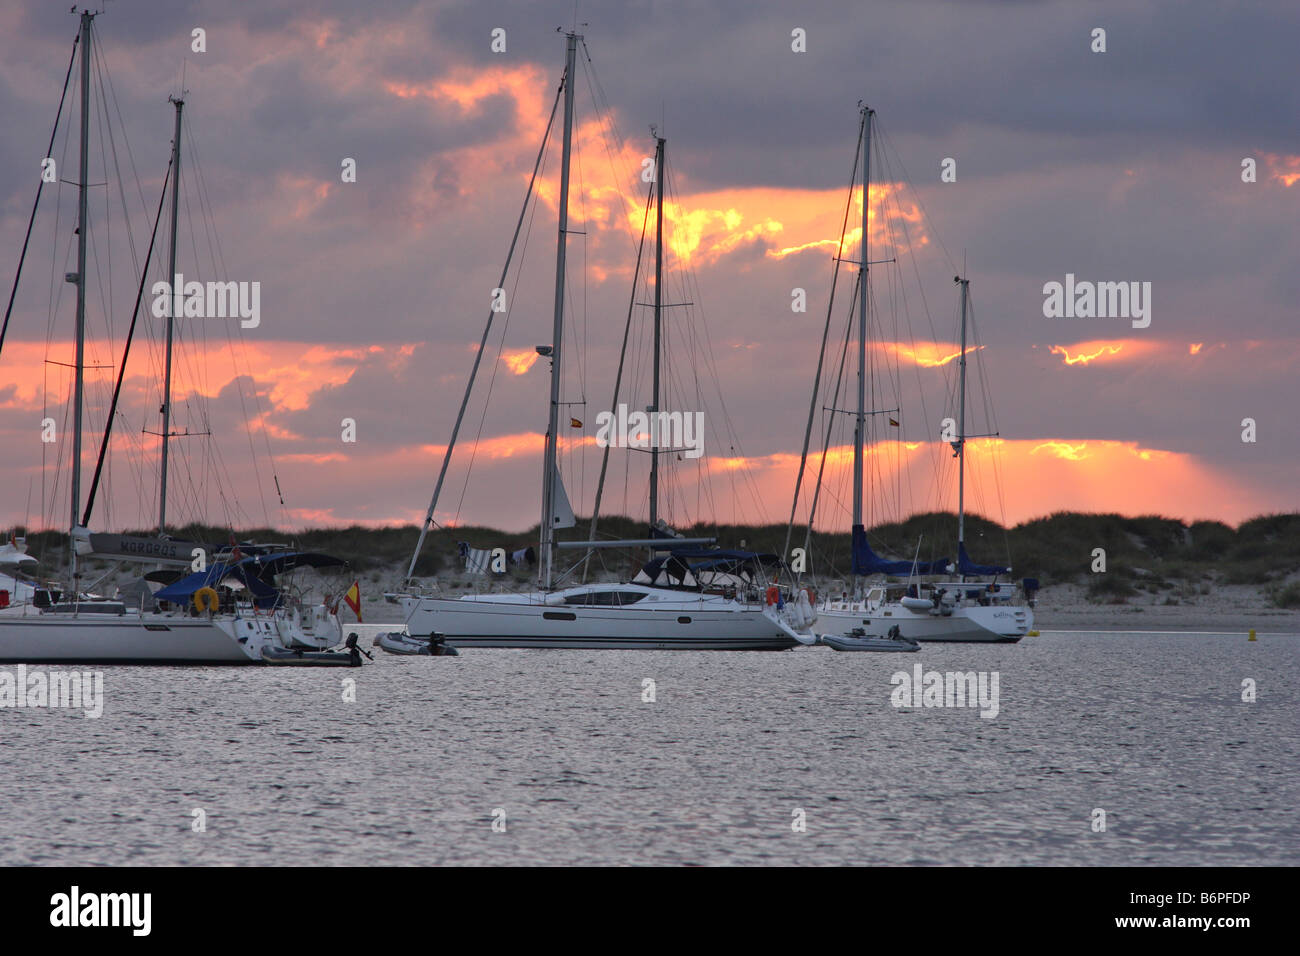 The sun rises among the clouds behind the ships anchored in the island of Espalmador, a small island in the Balearic Stock Photo